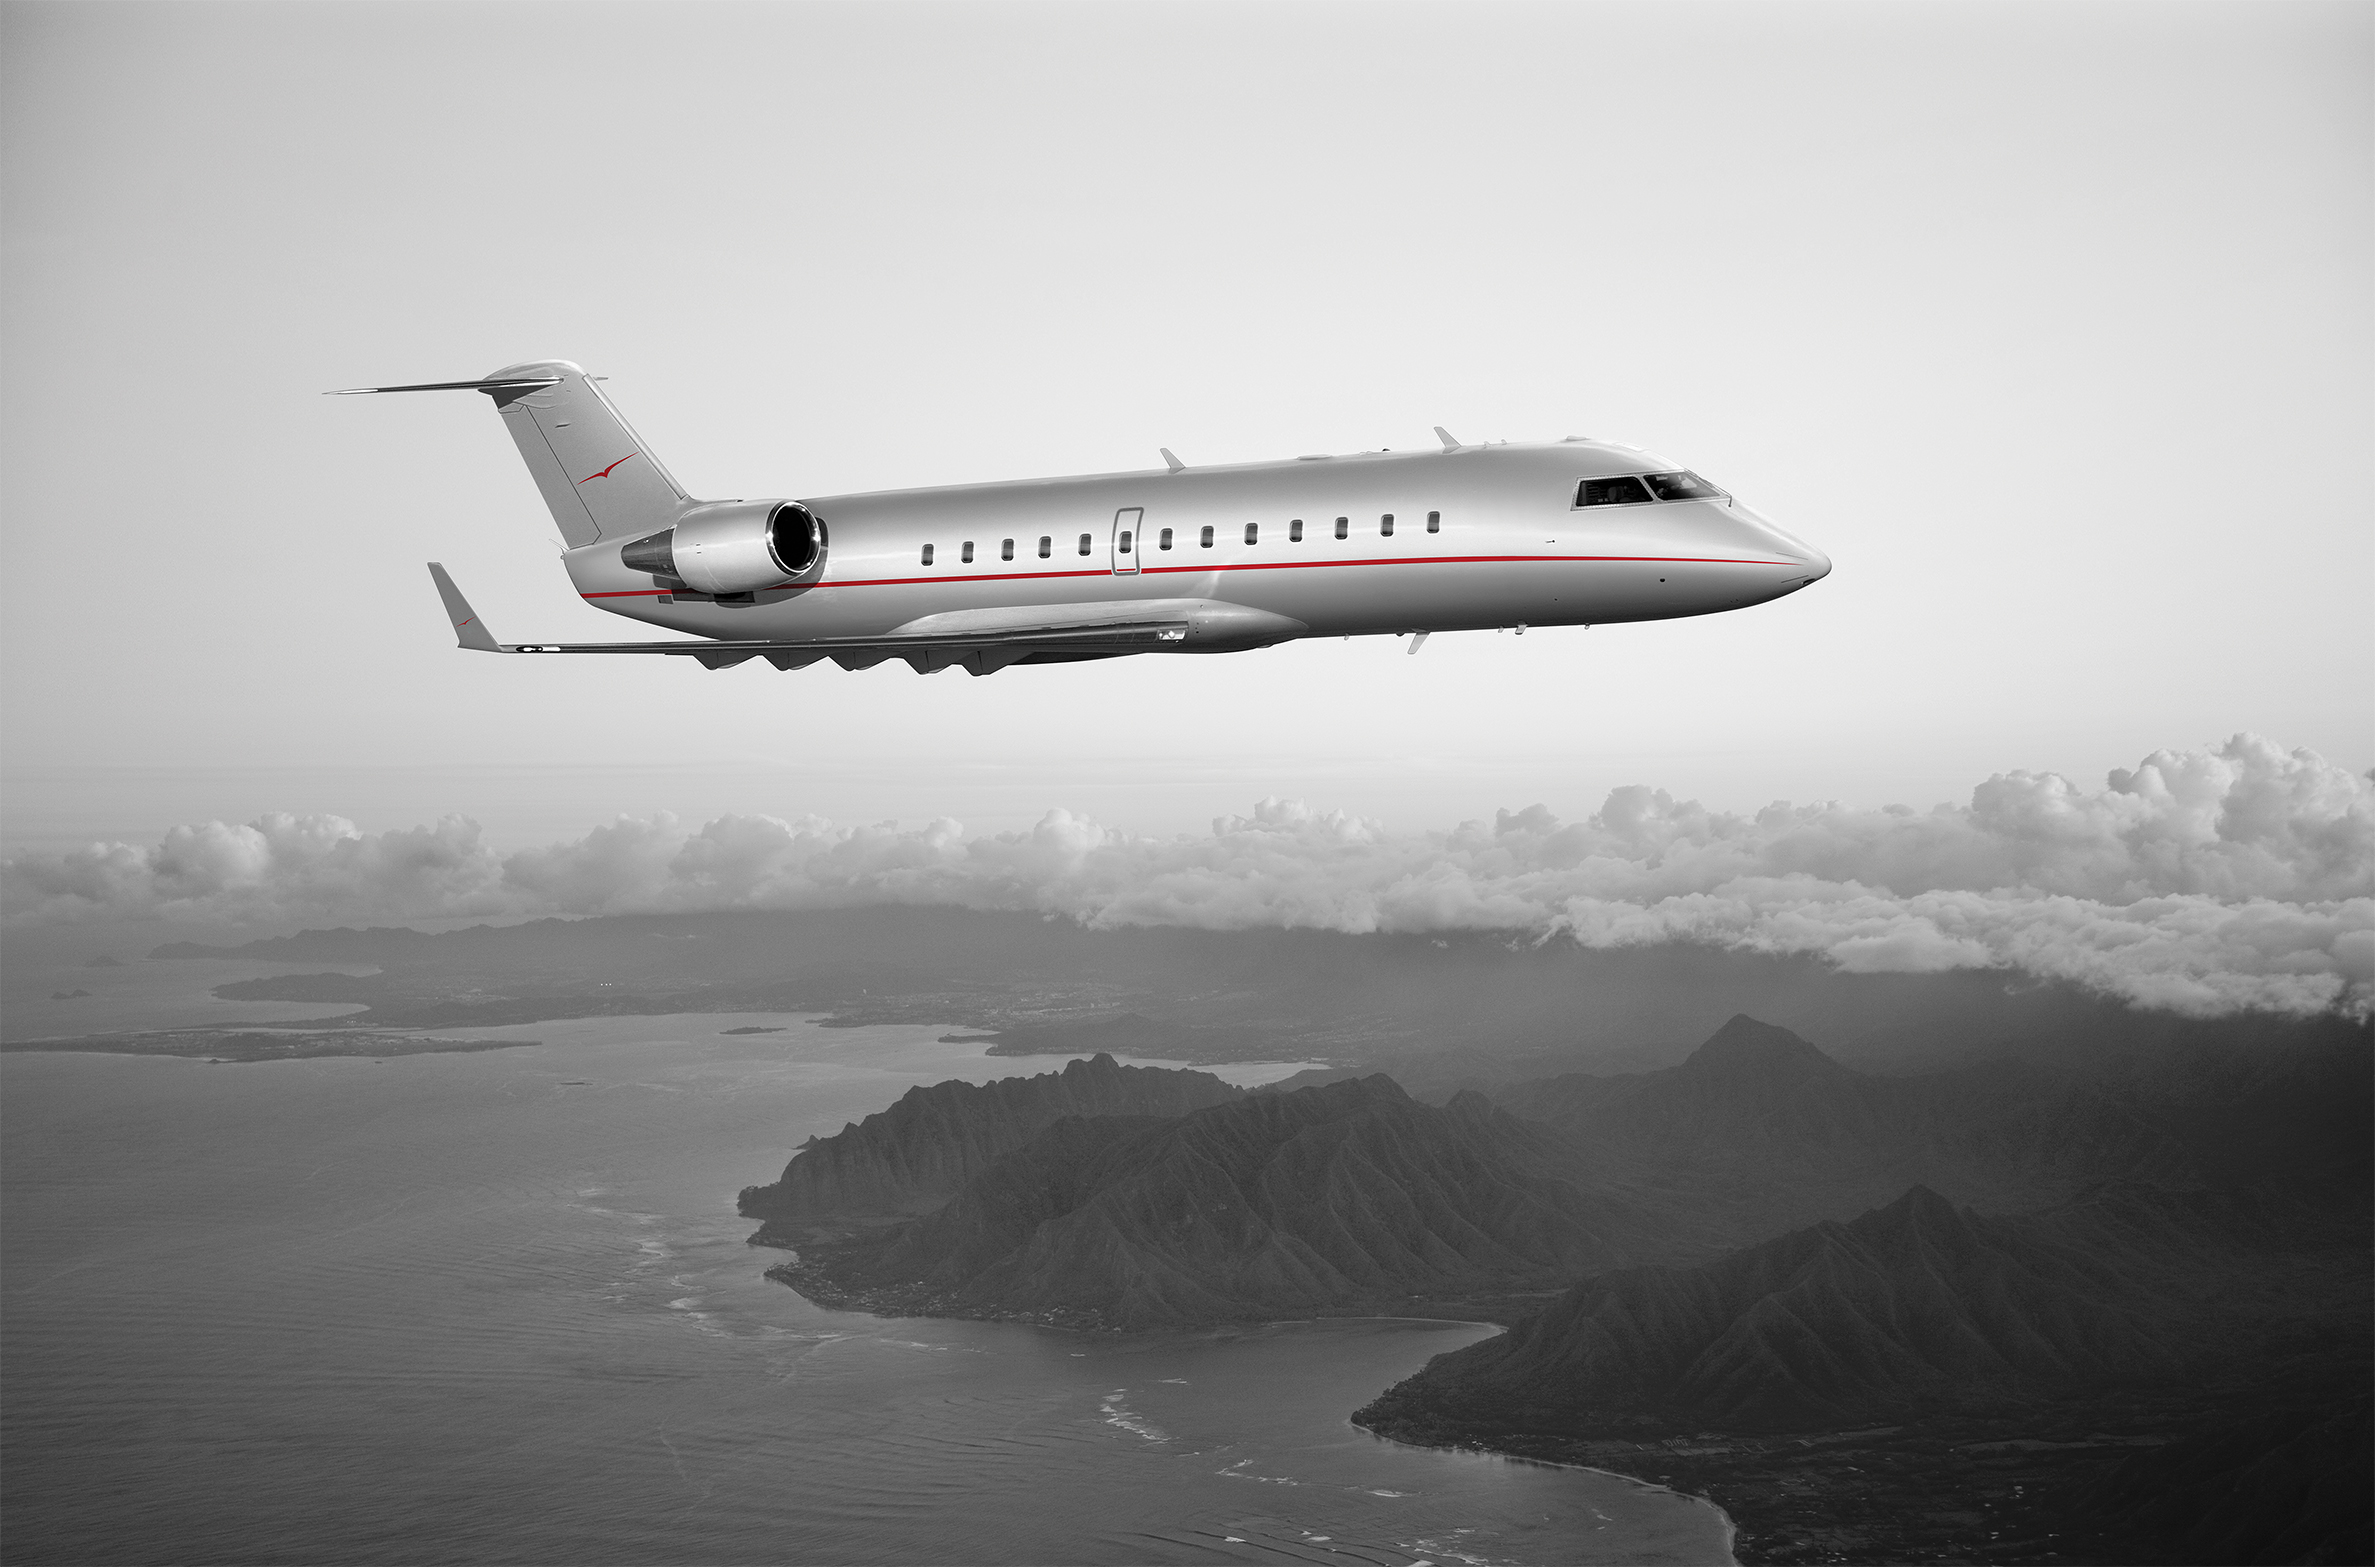 VistaJet Challenger 850 in air